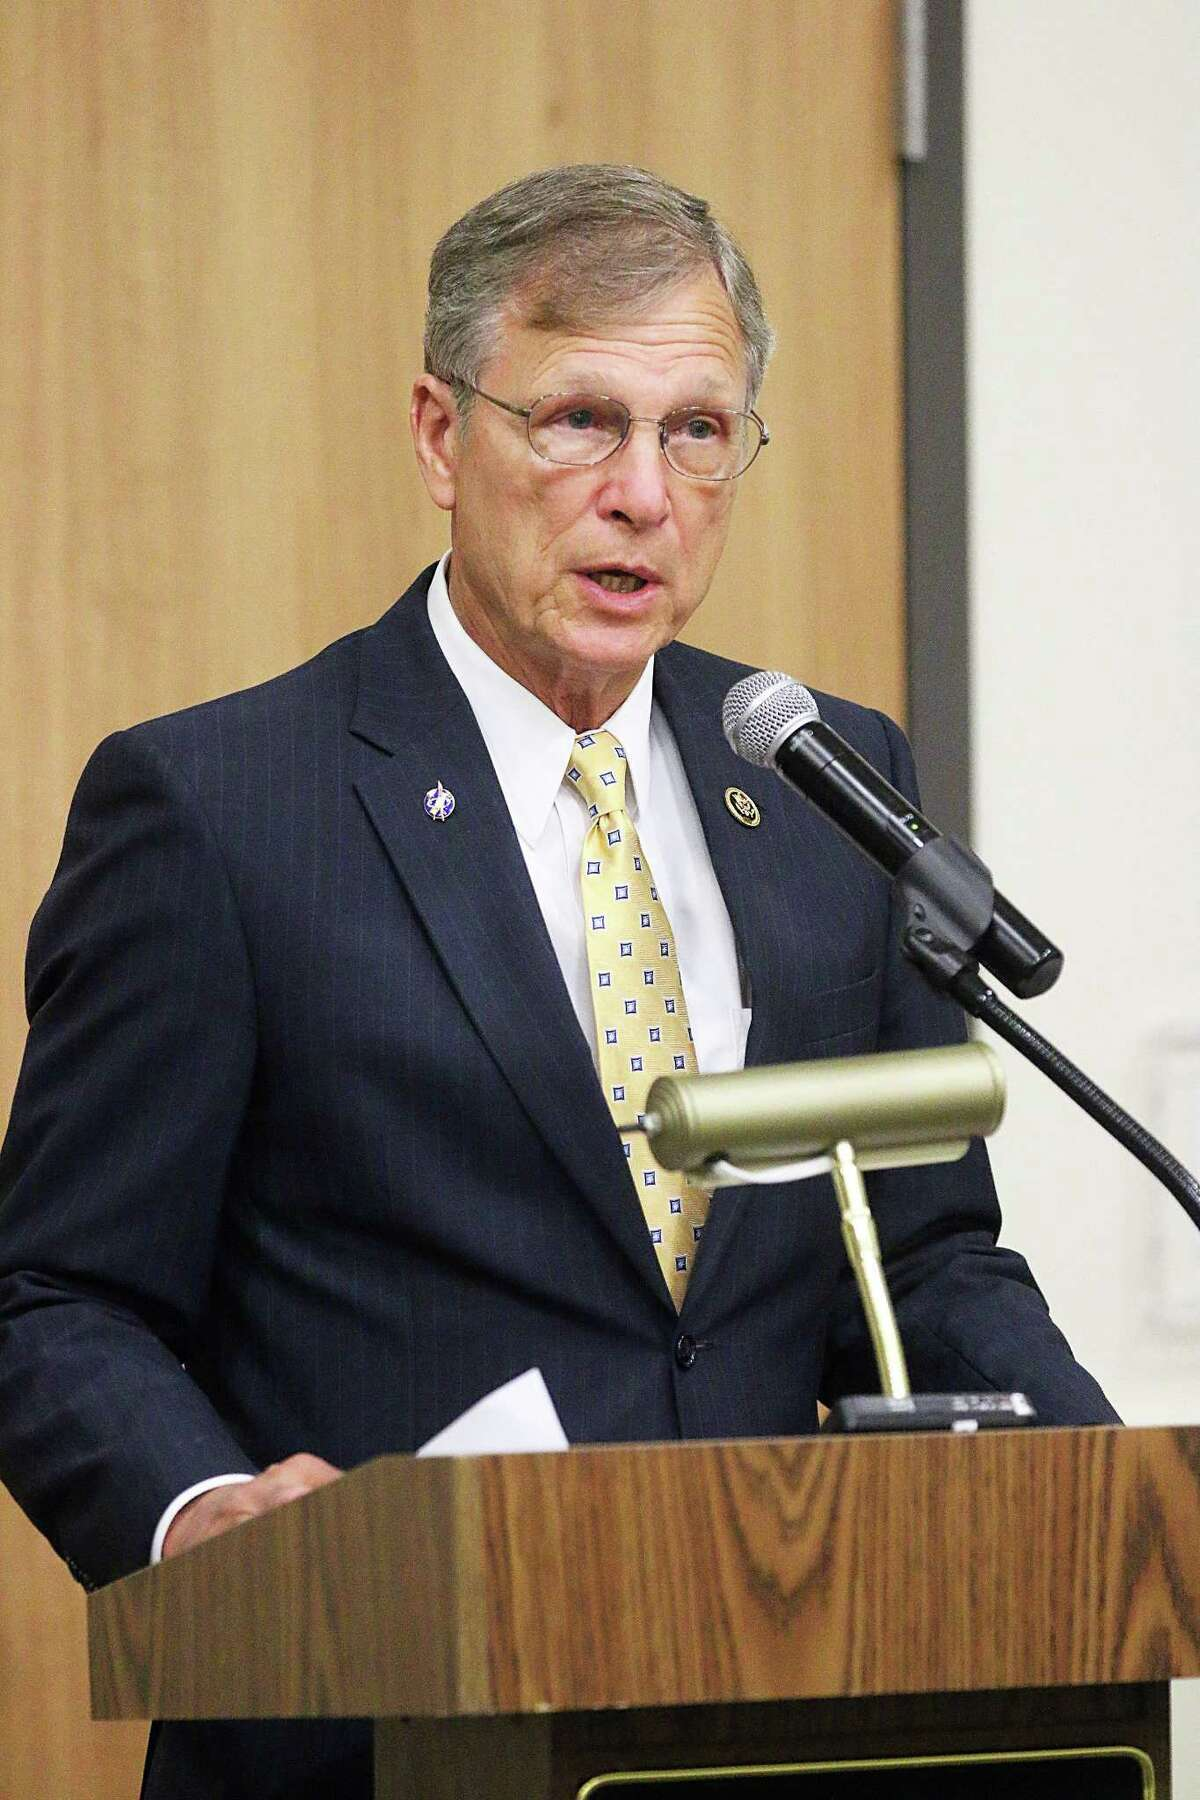 Congressman Dr. Brian Babin, R-Woodville, spoke to the Dayton Rotary Club recently at the Dayton Community Center. He is an Air Force veteran.